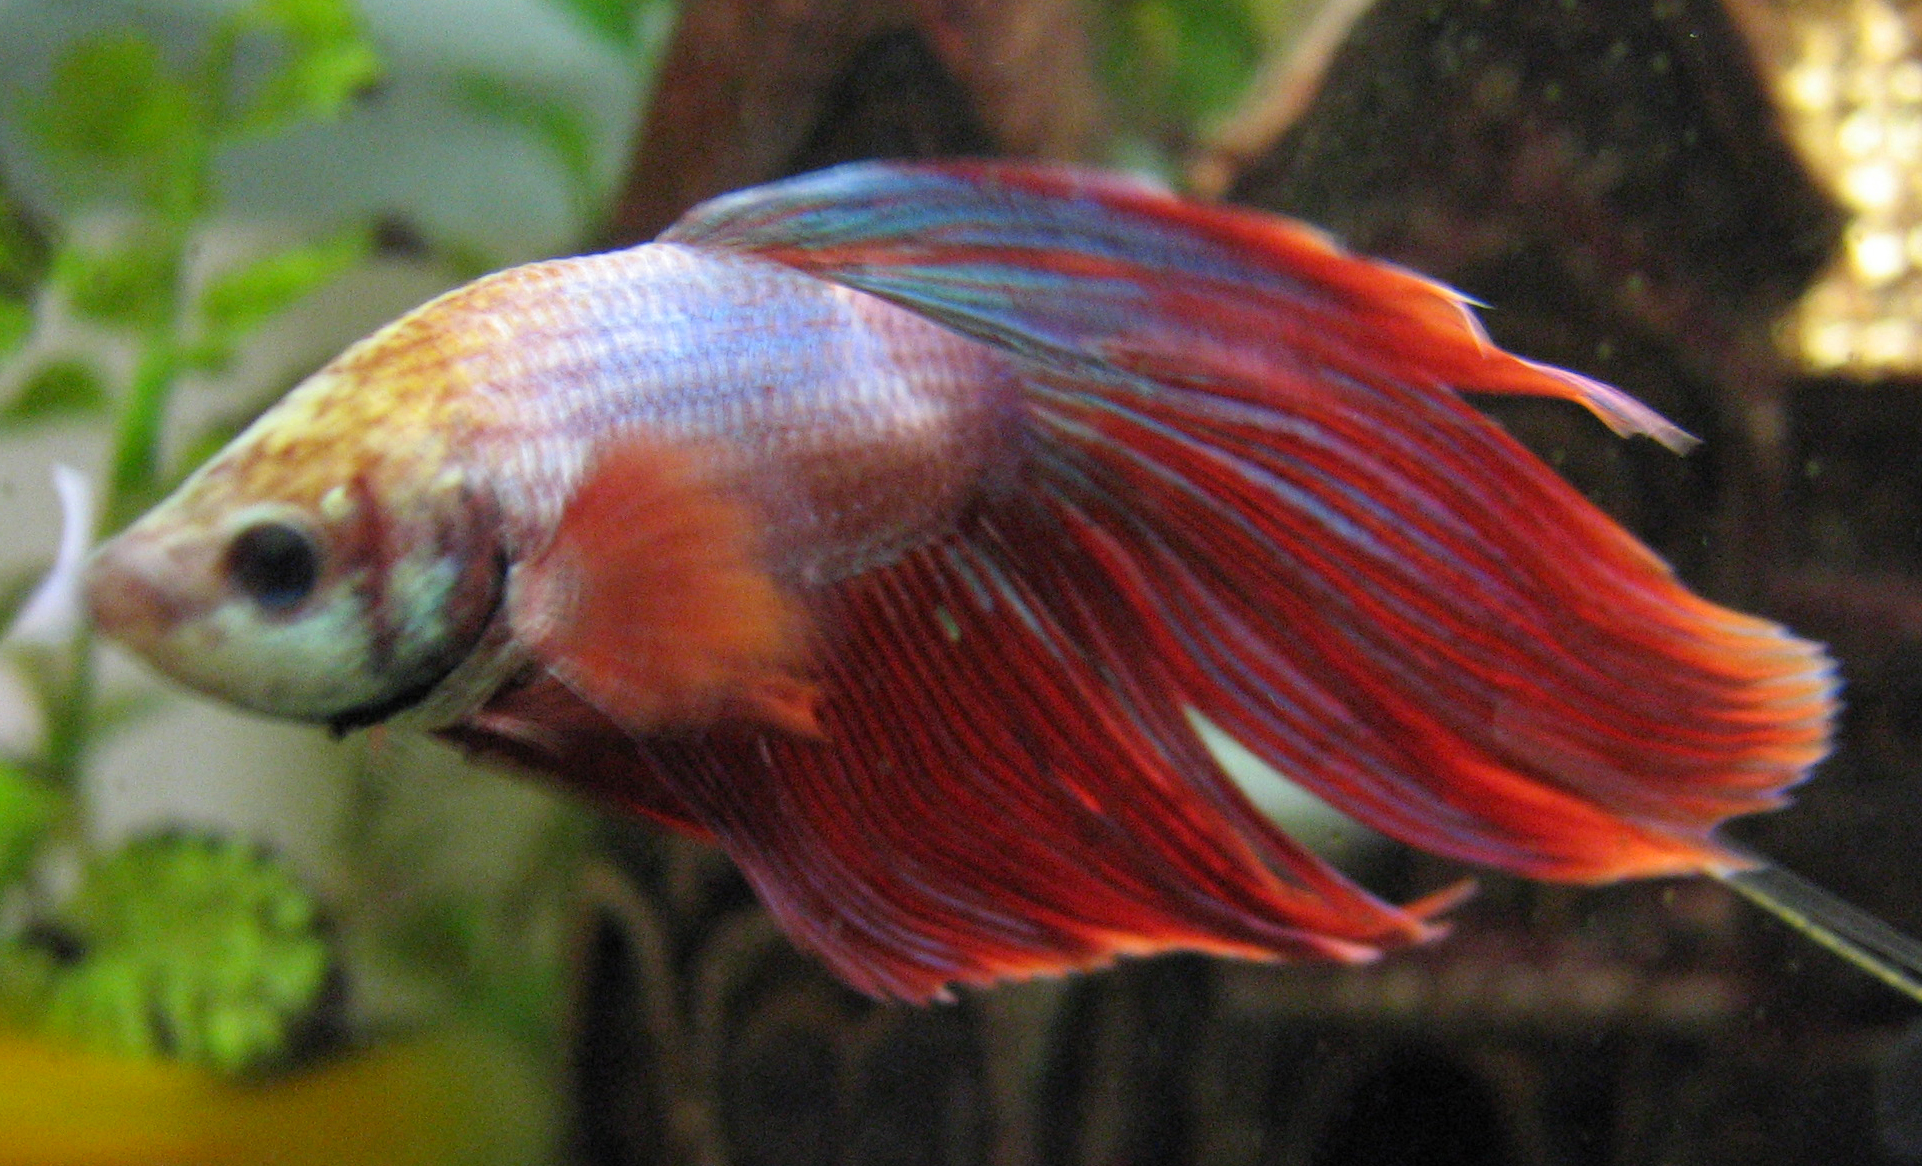 House pets a z guide kandginfo for Healthy betta fish